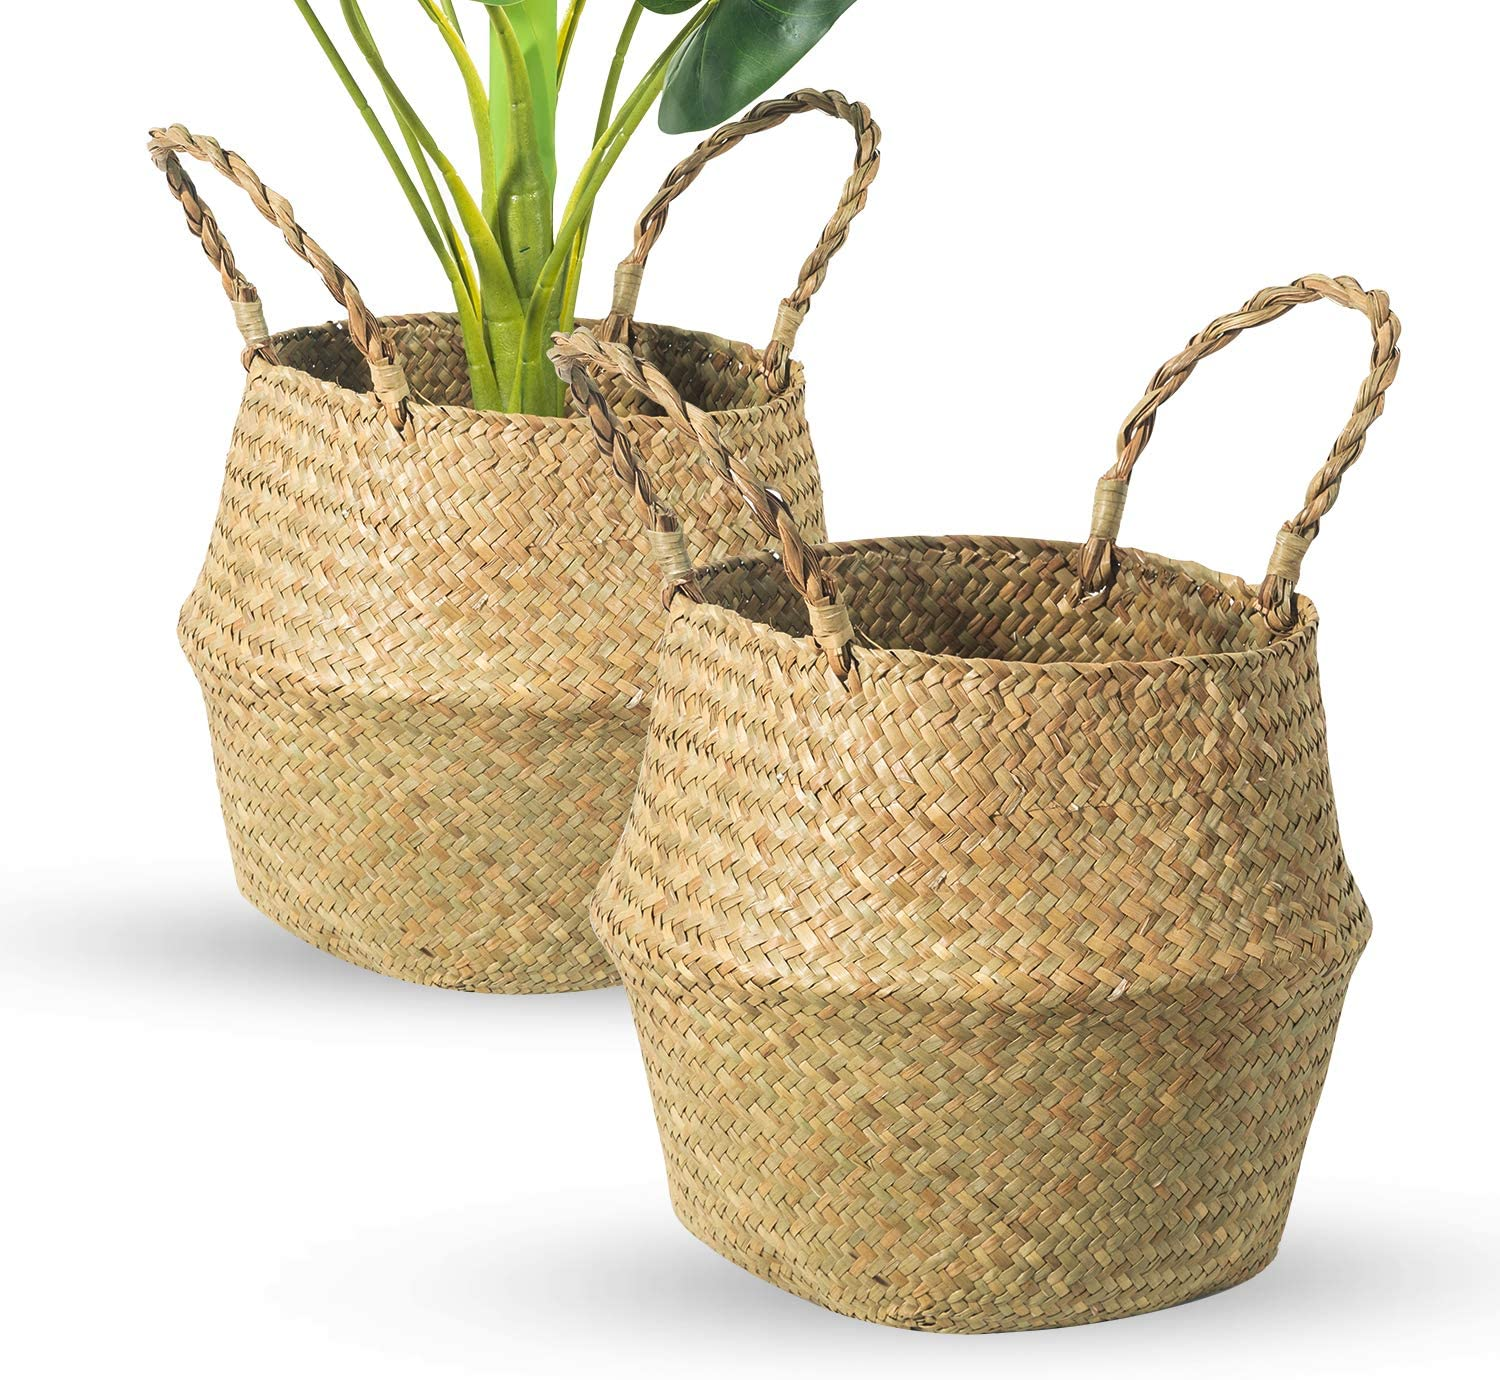 BrilliantJo Seagrass Belly Basket, Set of 2 Woven Plant Pot Holder Handmade Home Decor for Storage Plants Picnic Grocery Large(12.6 x 11.02 inch)